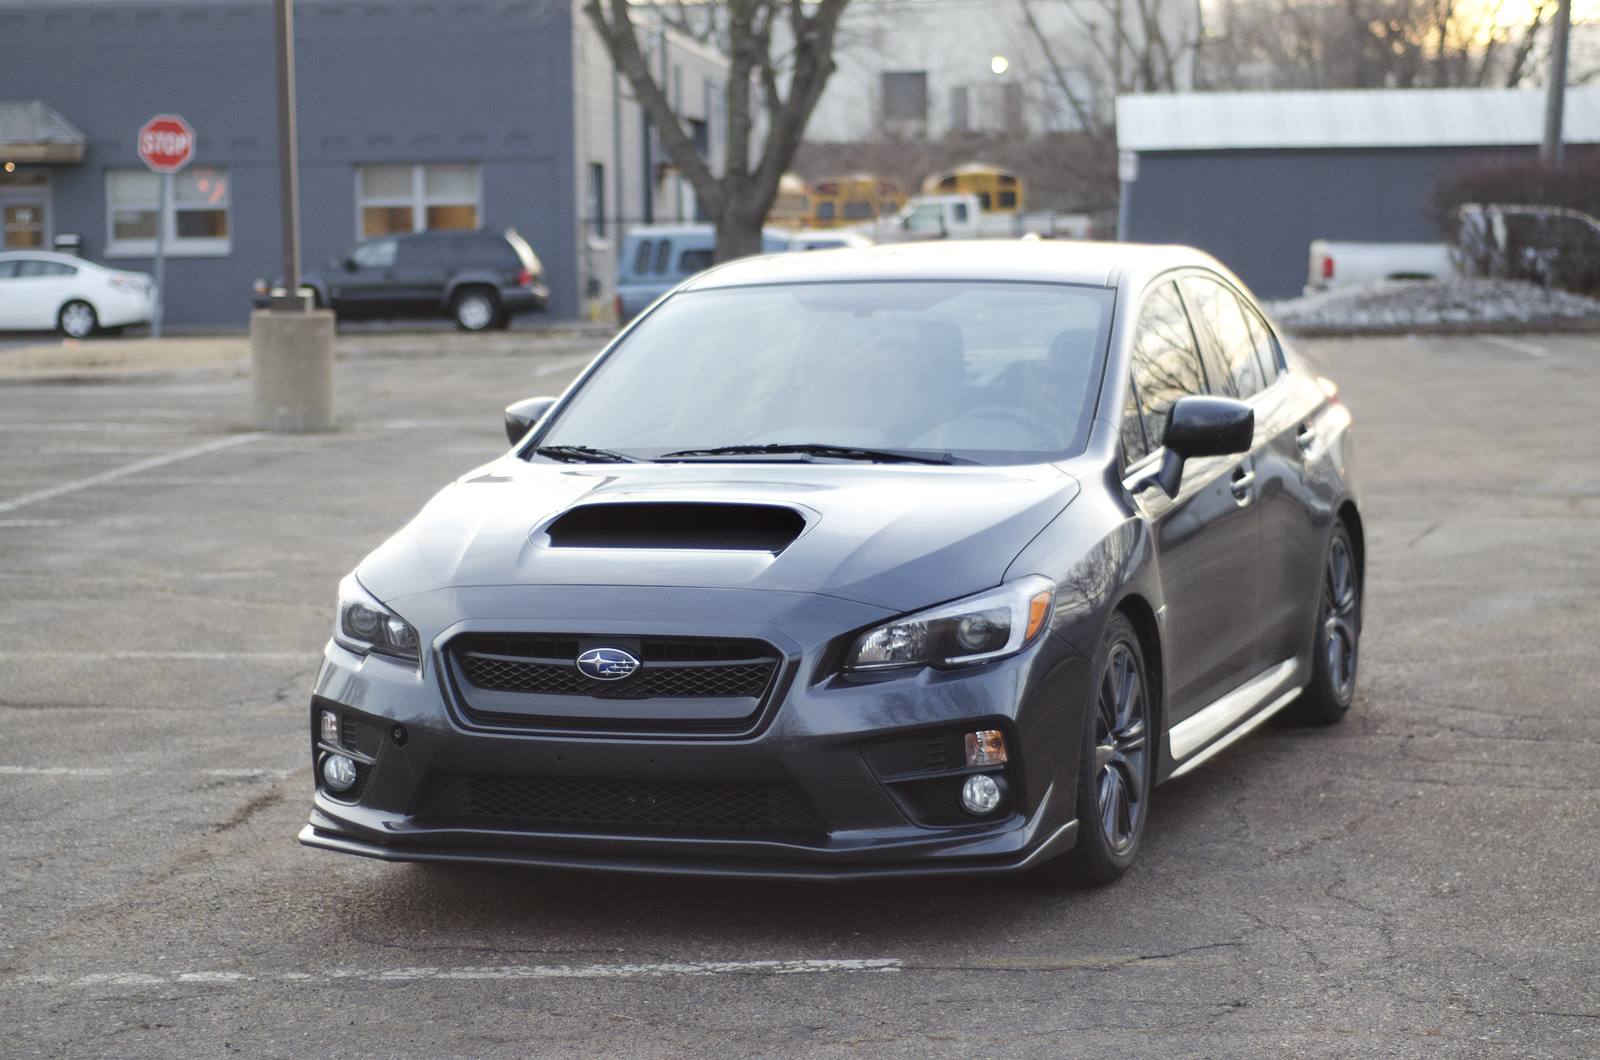 Grimmspeeds 2015 subaru wrx build thread nasioc this image has been resized click this bar to view the full image the original image is sized 1600x1060 freerunsca Images